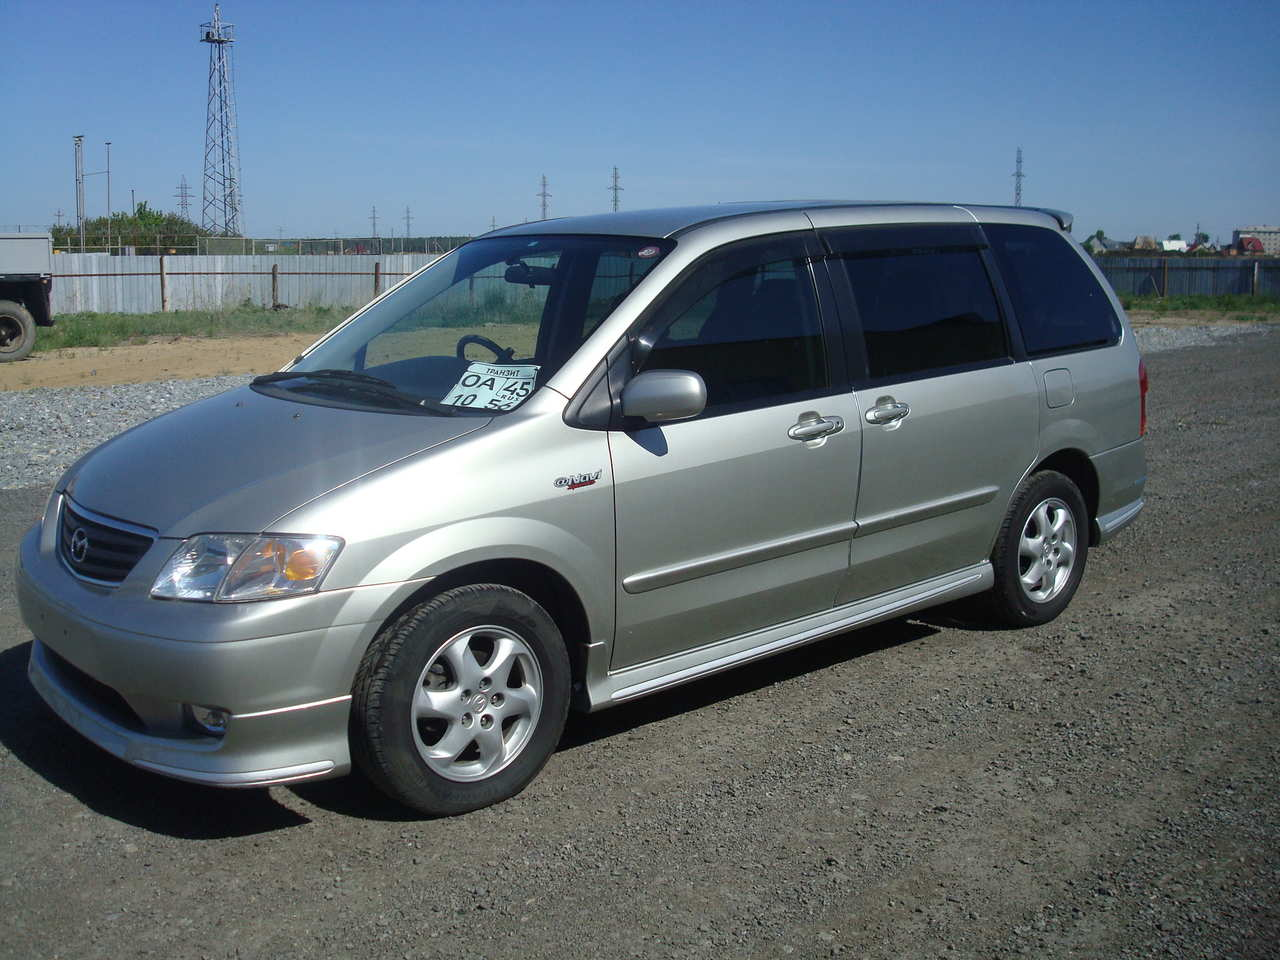 Car Door Window Replacement Cost >> 2001 Mazda MPV For Sale, 2.5, Gasoline, Automatic For Sale